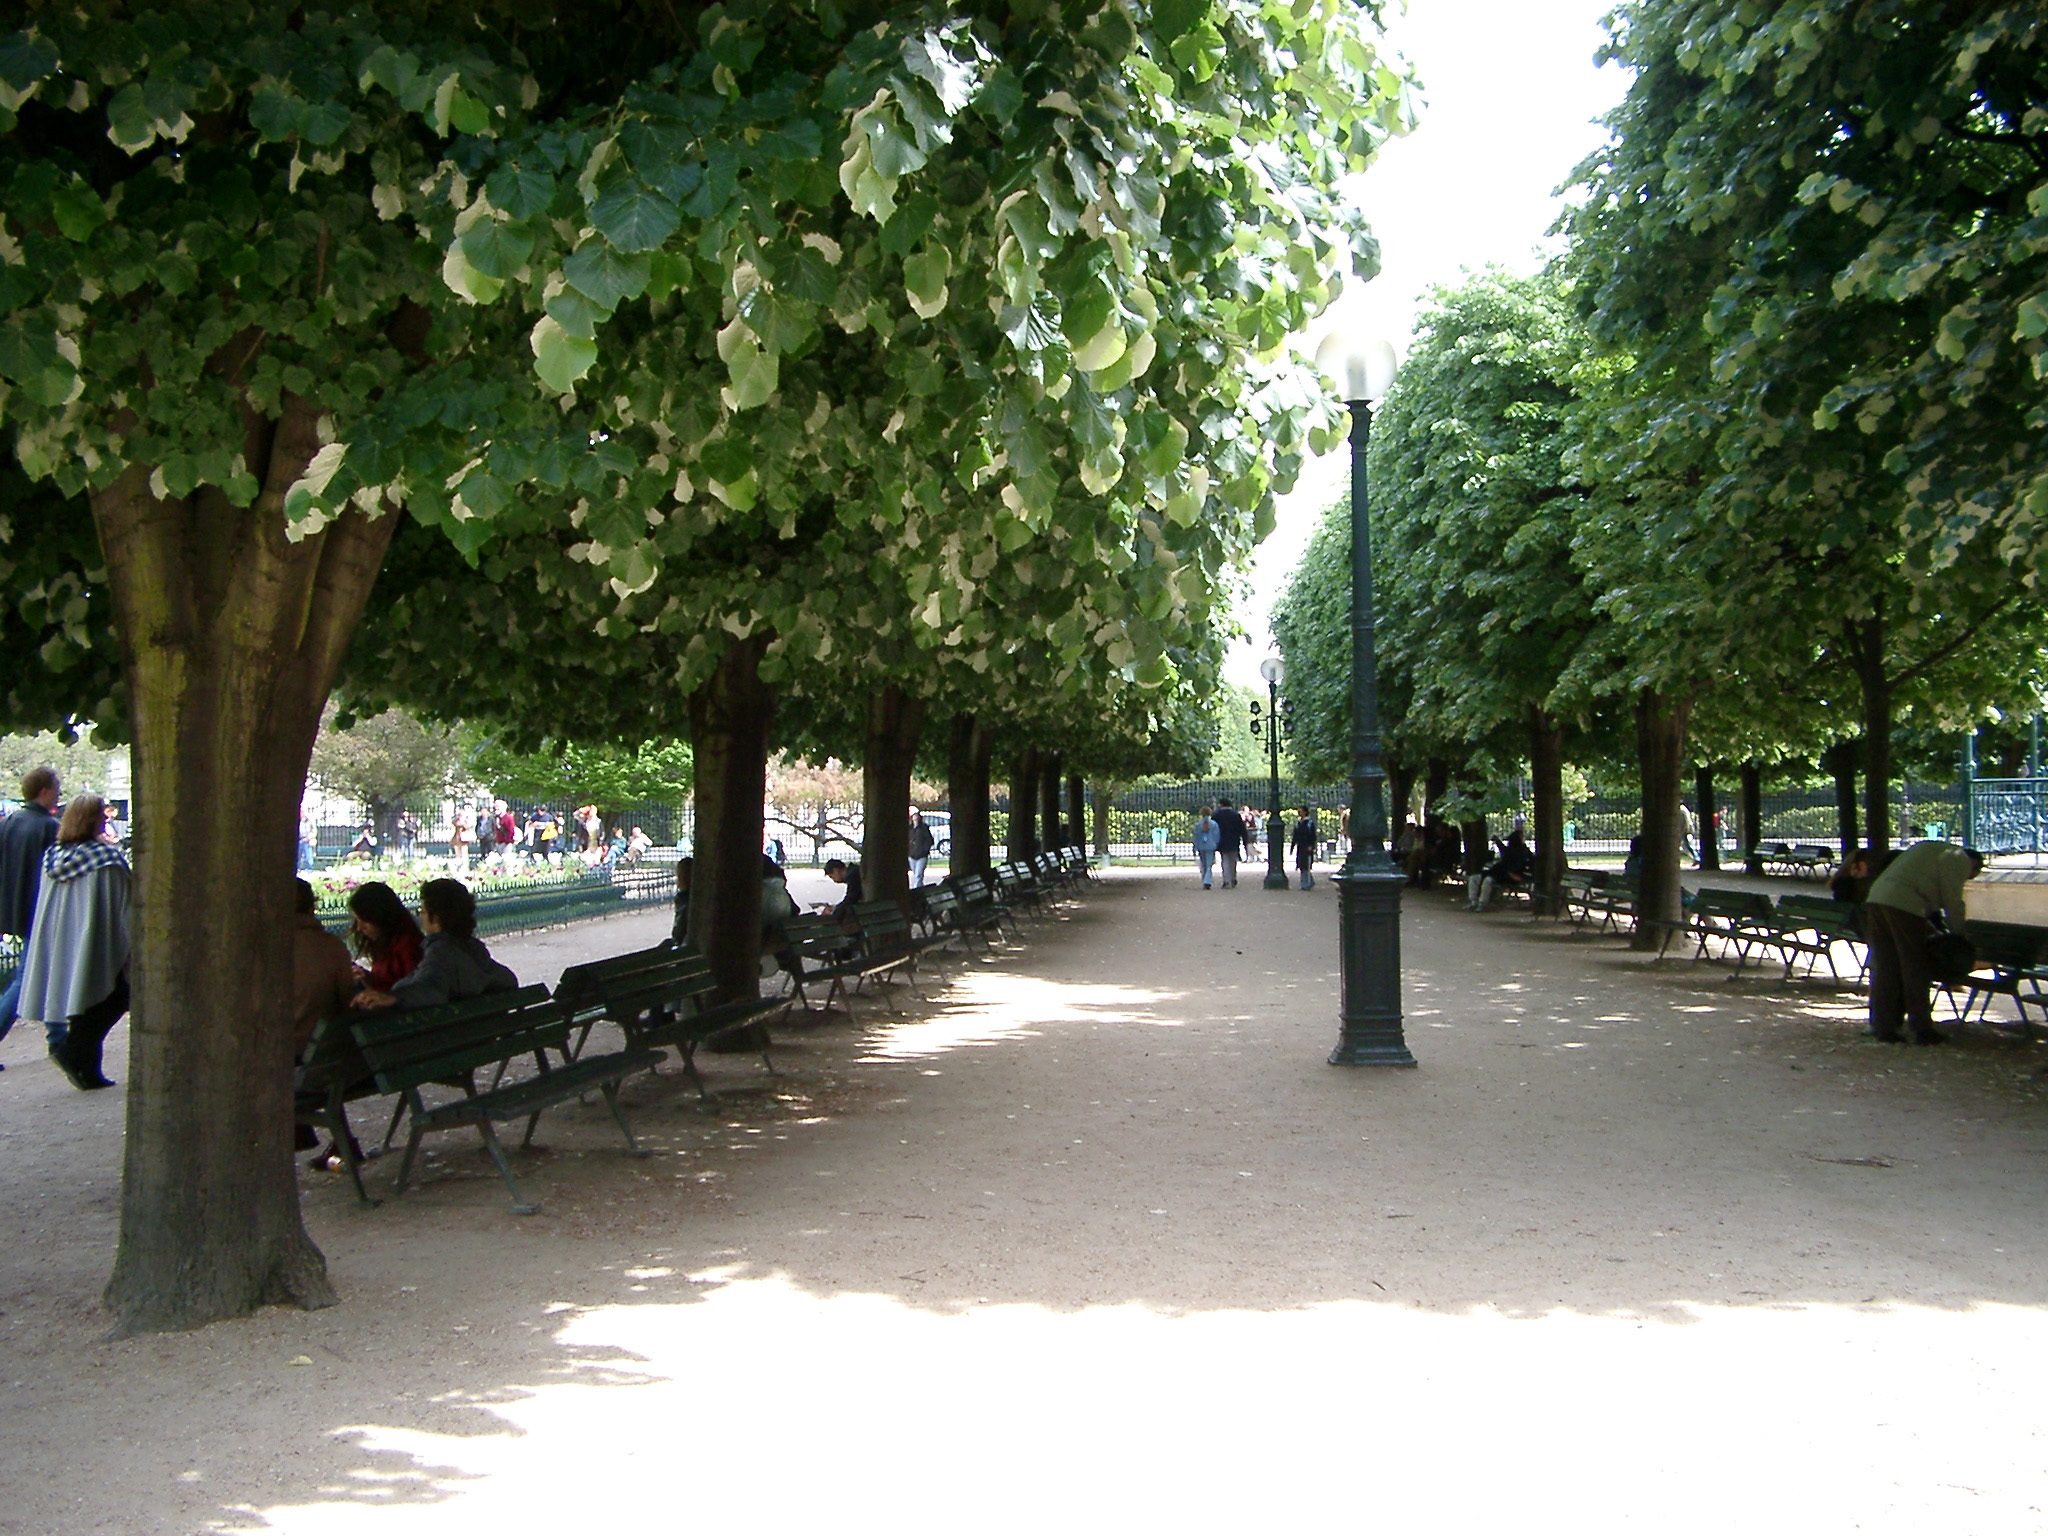 Receding rows of leafy green trees in a Paris park with wooden benches on a gravel walkway to relax and enjoy the sunshine